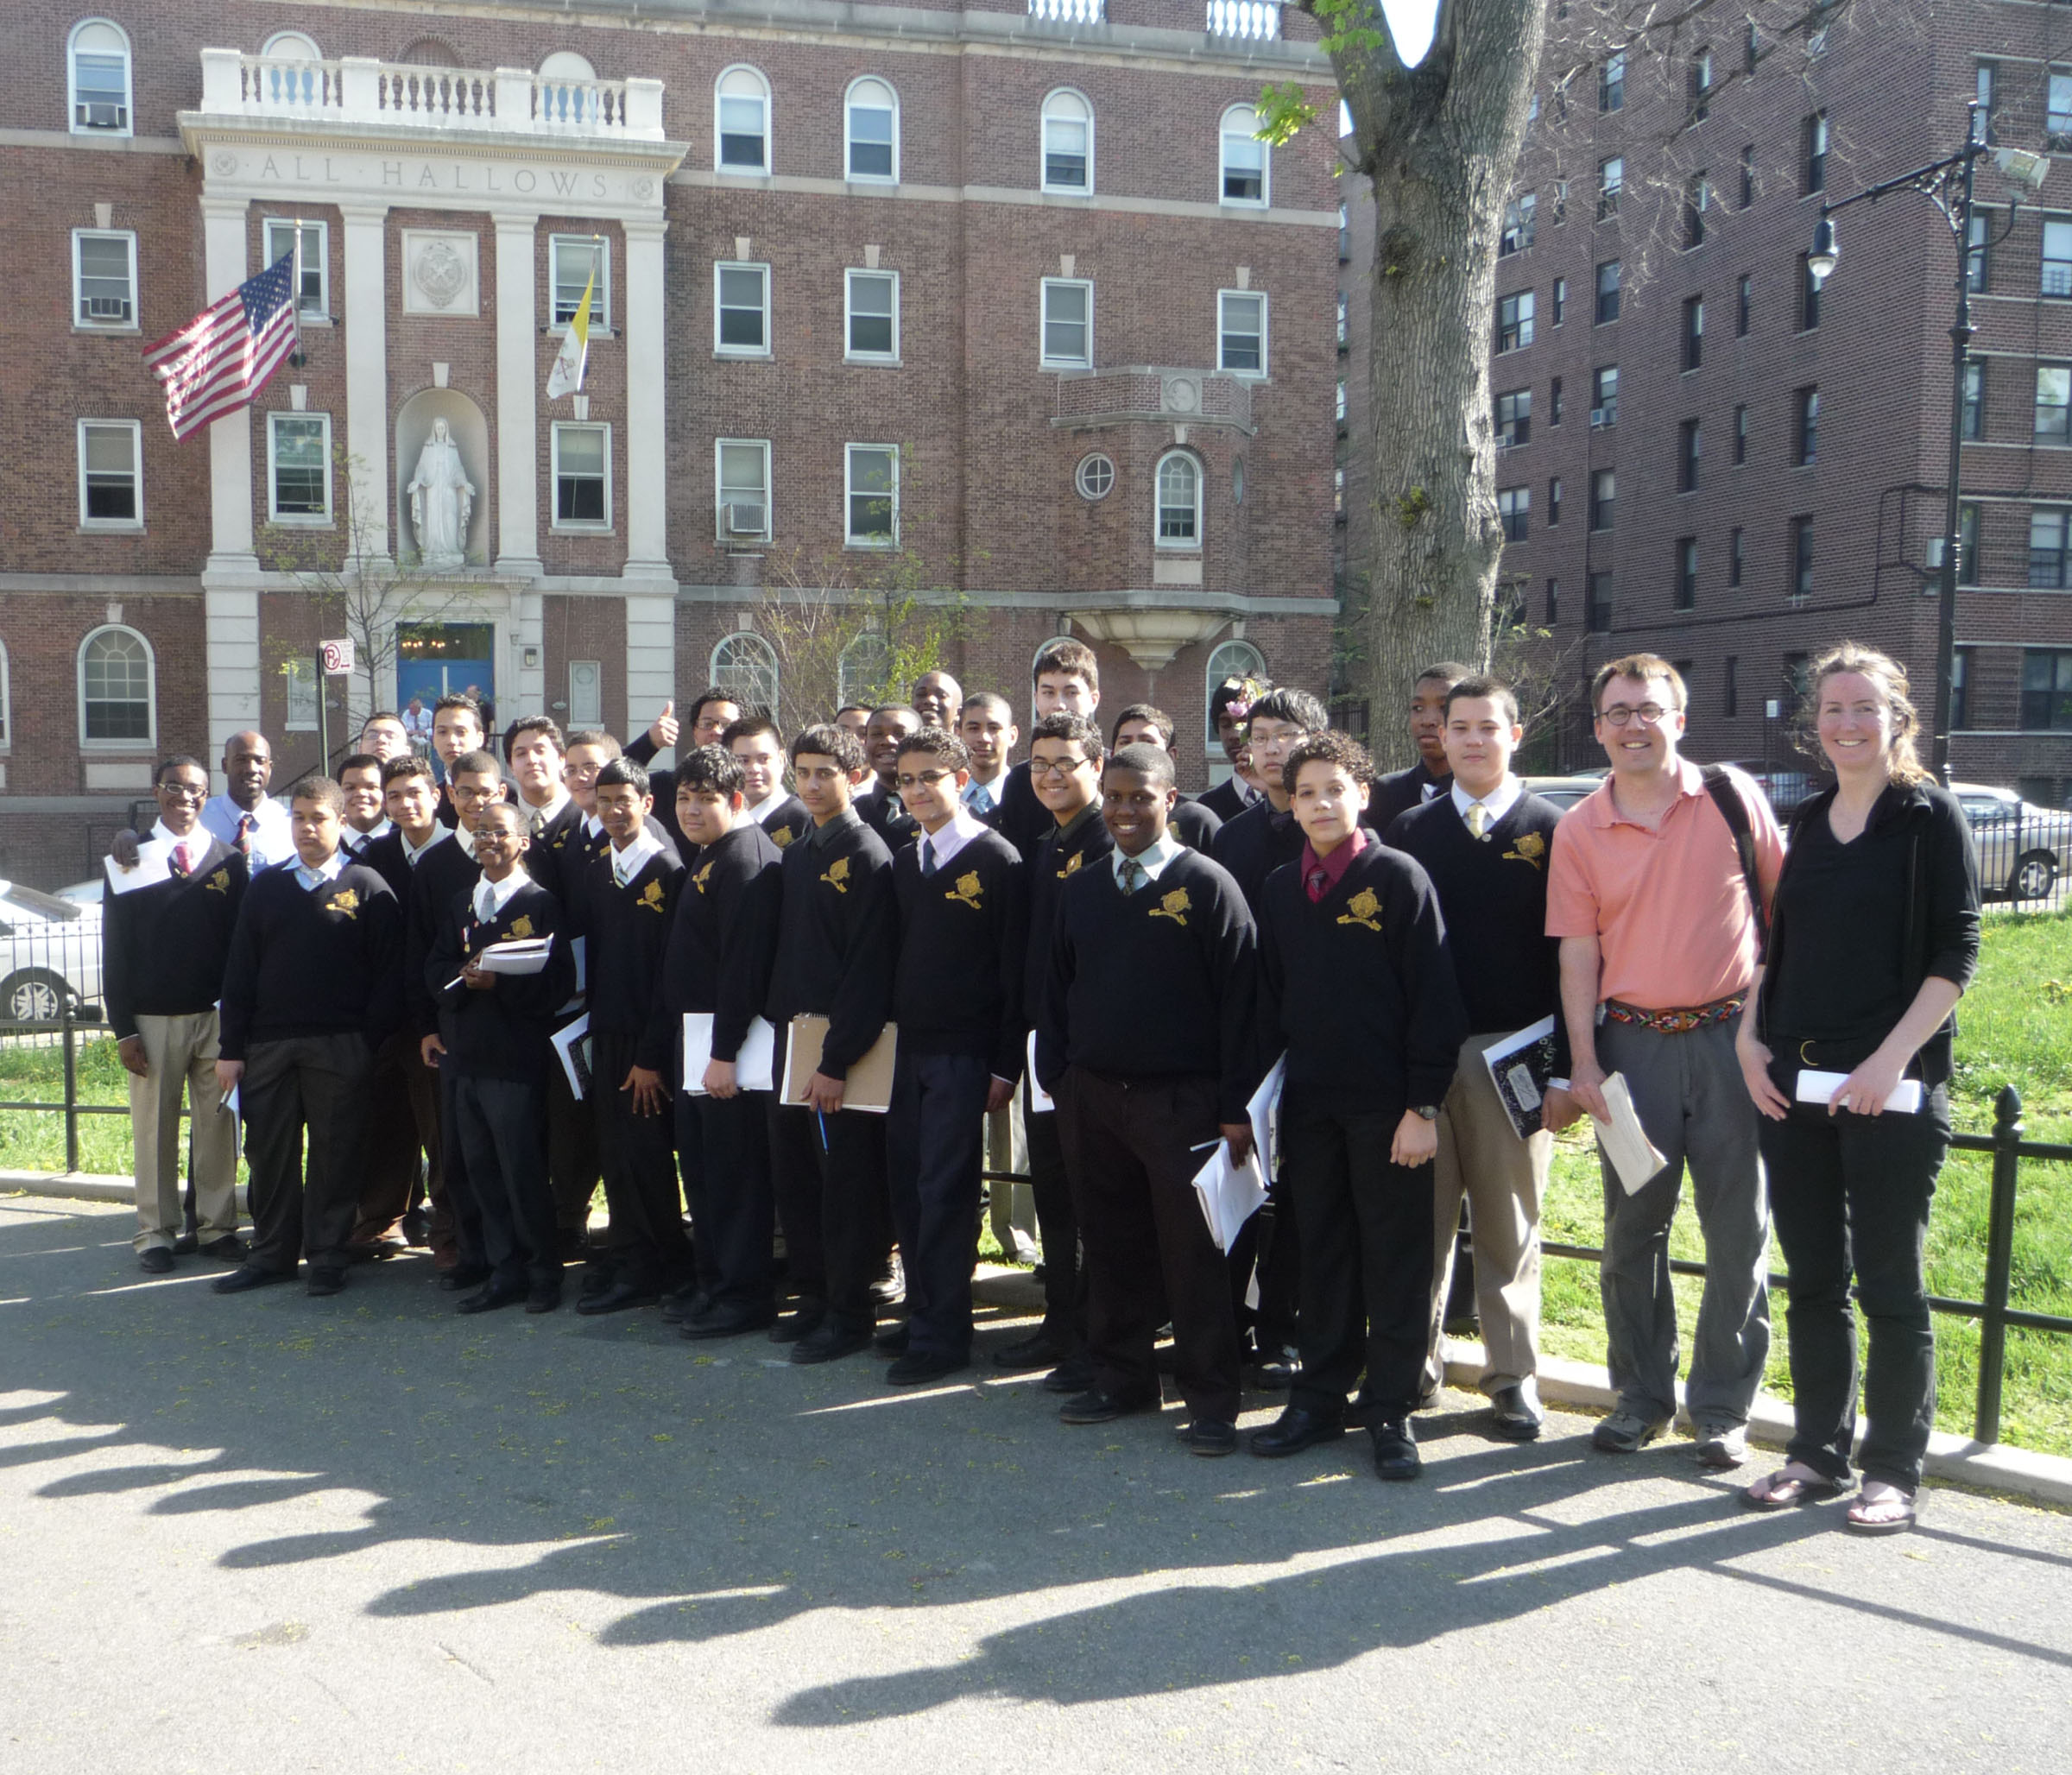 One of the tree museum Haiku Hike led by poet E.J.McAdams, with Mr. Brunelle Griffith's freshman honors class from All Hallows High School.